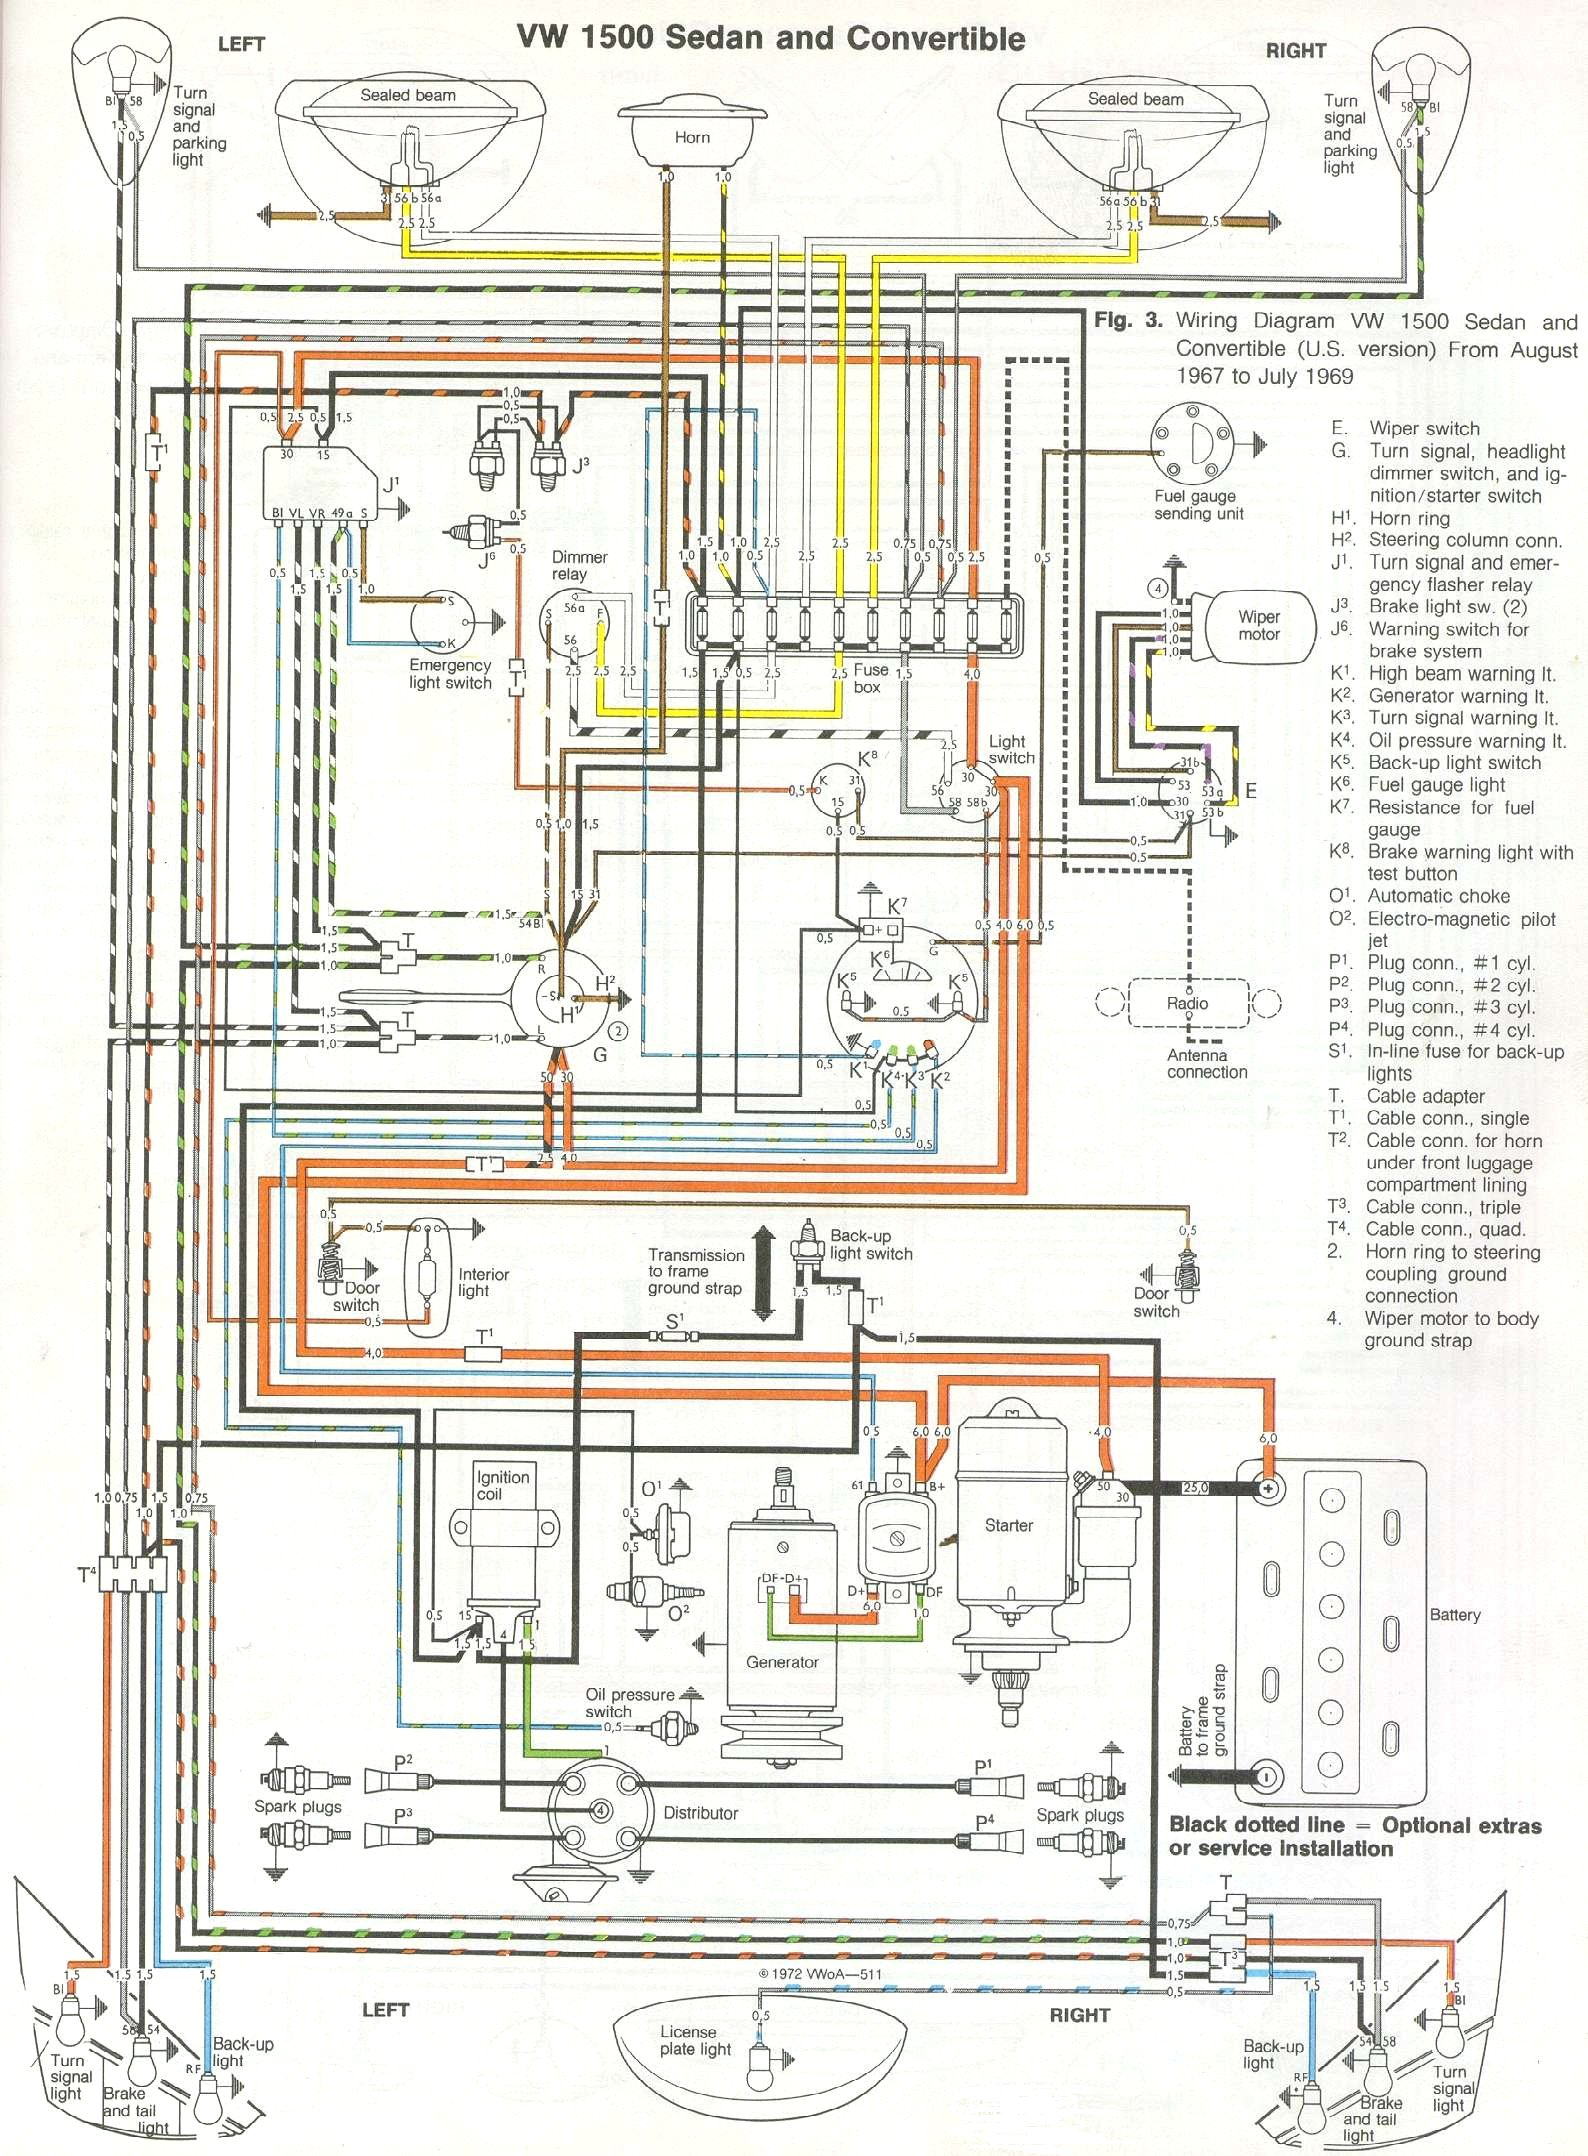 bug_6869 thesamba com type 1 wiring diagrams find wiring diagram for 87 ford f 150 at sewacar.co